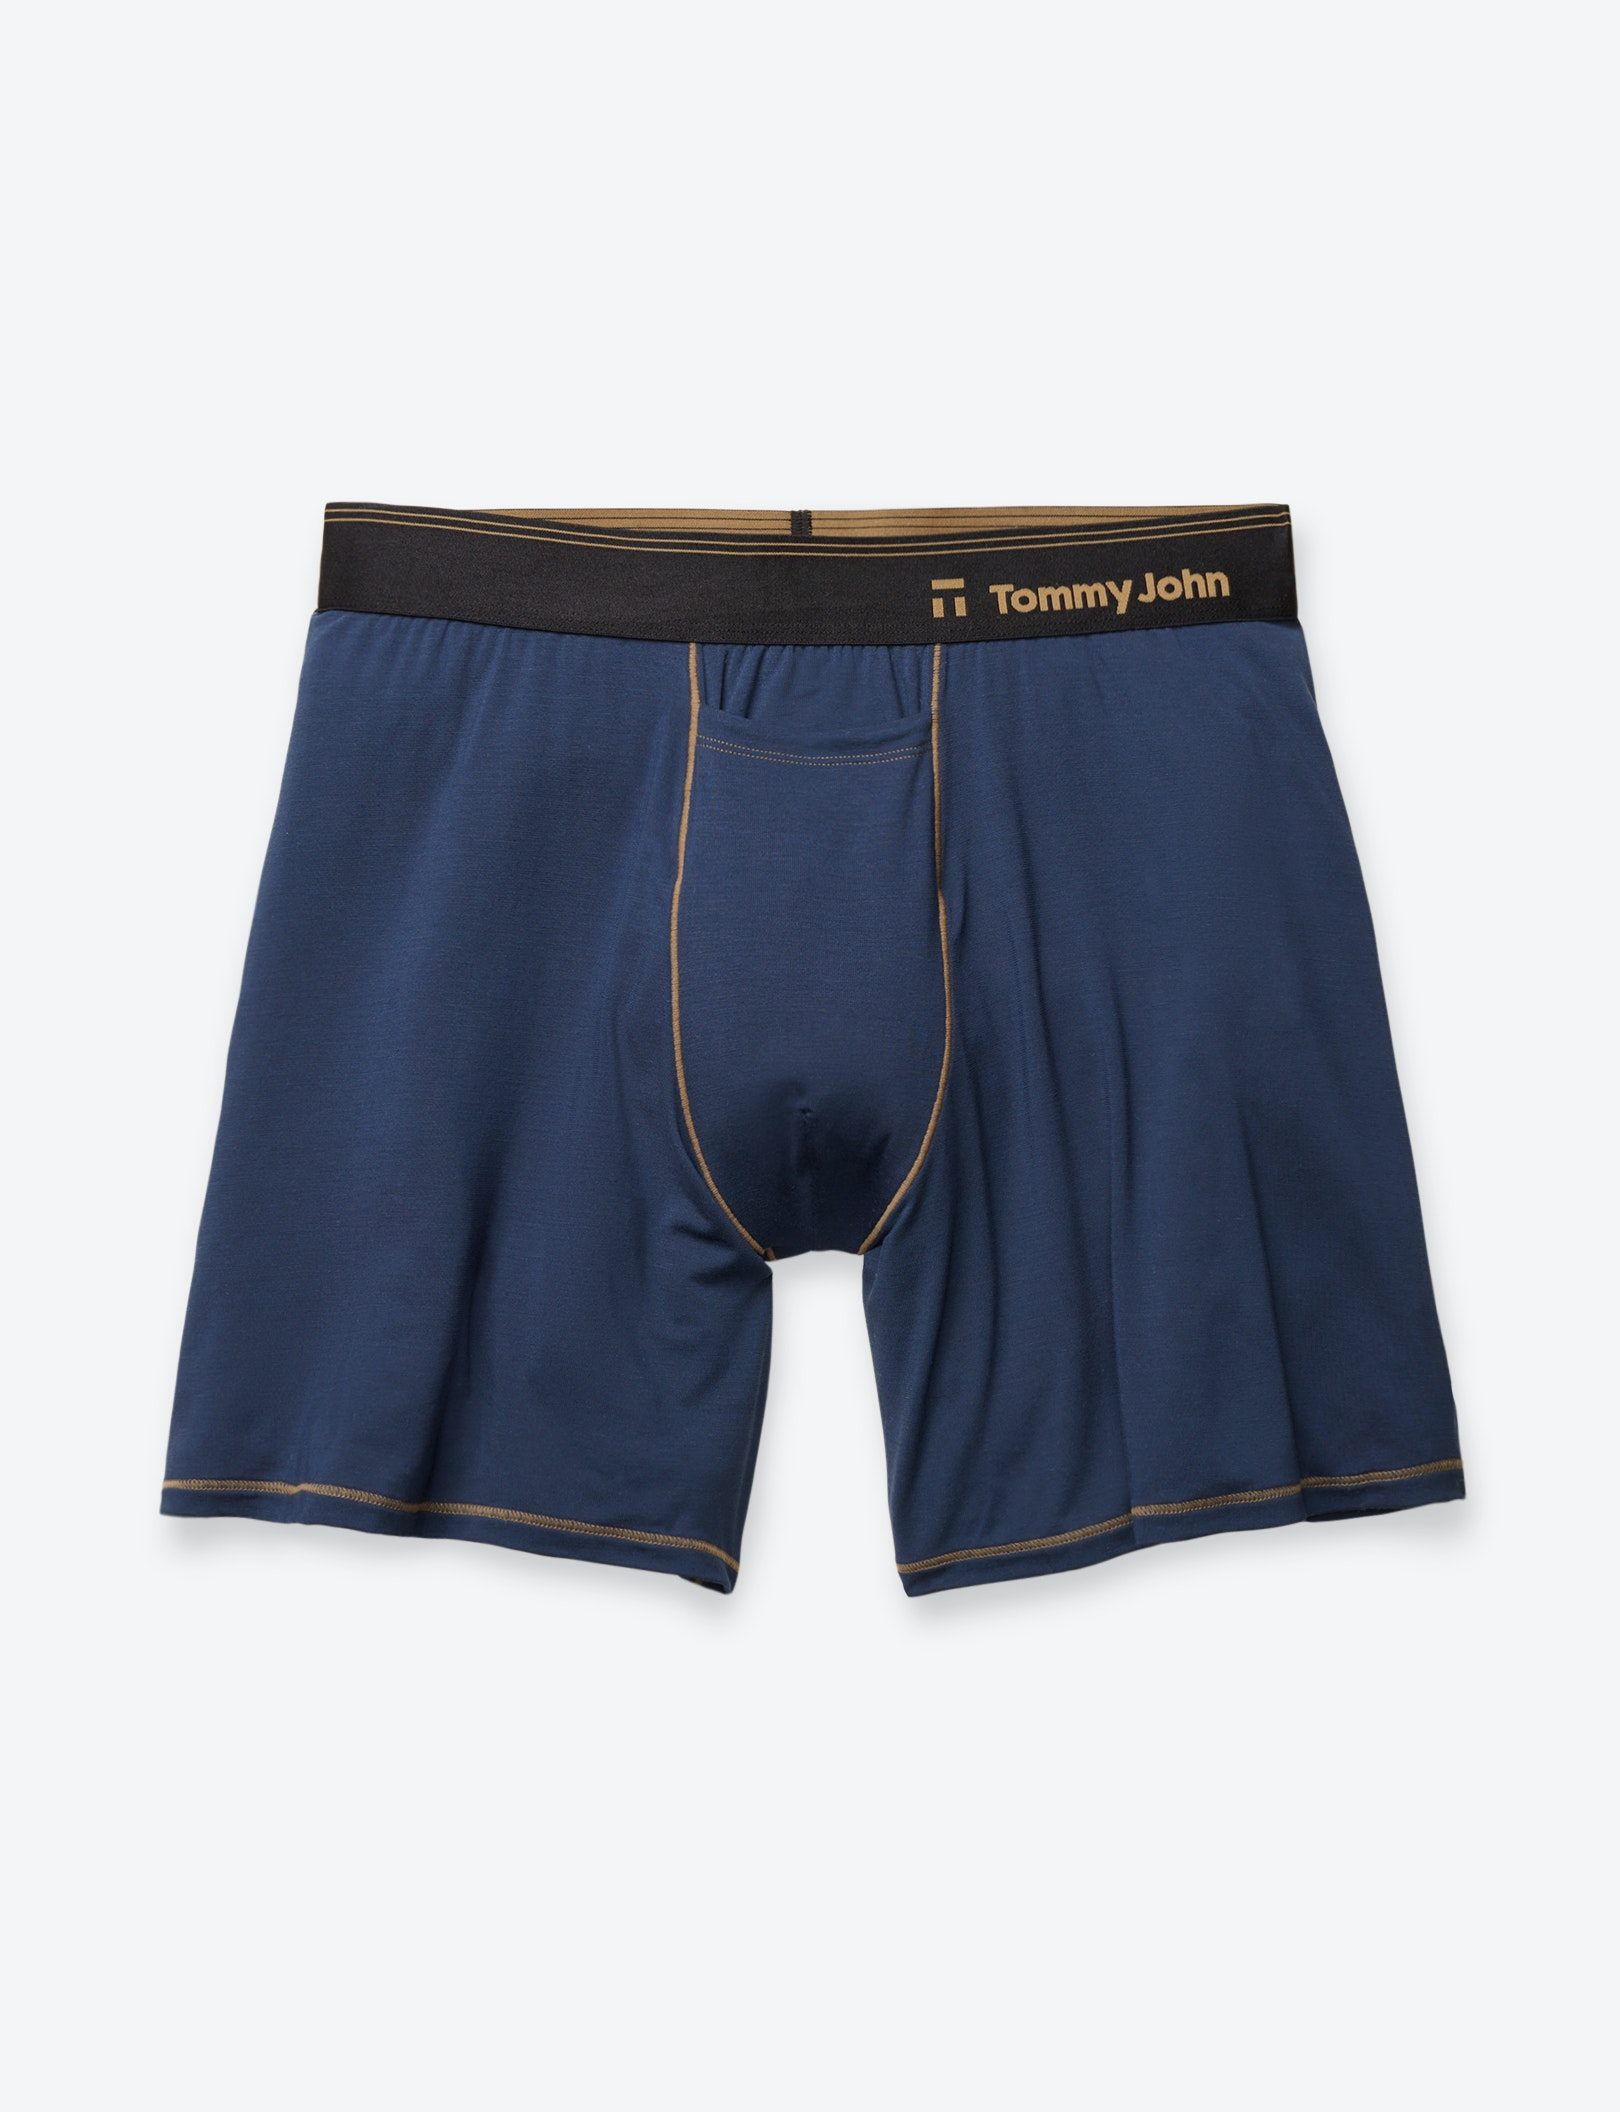 Image of Second Skin Gold Thread Relaxed Fit Boxer